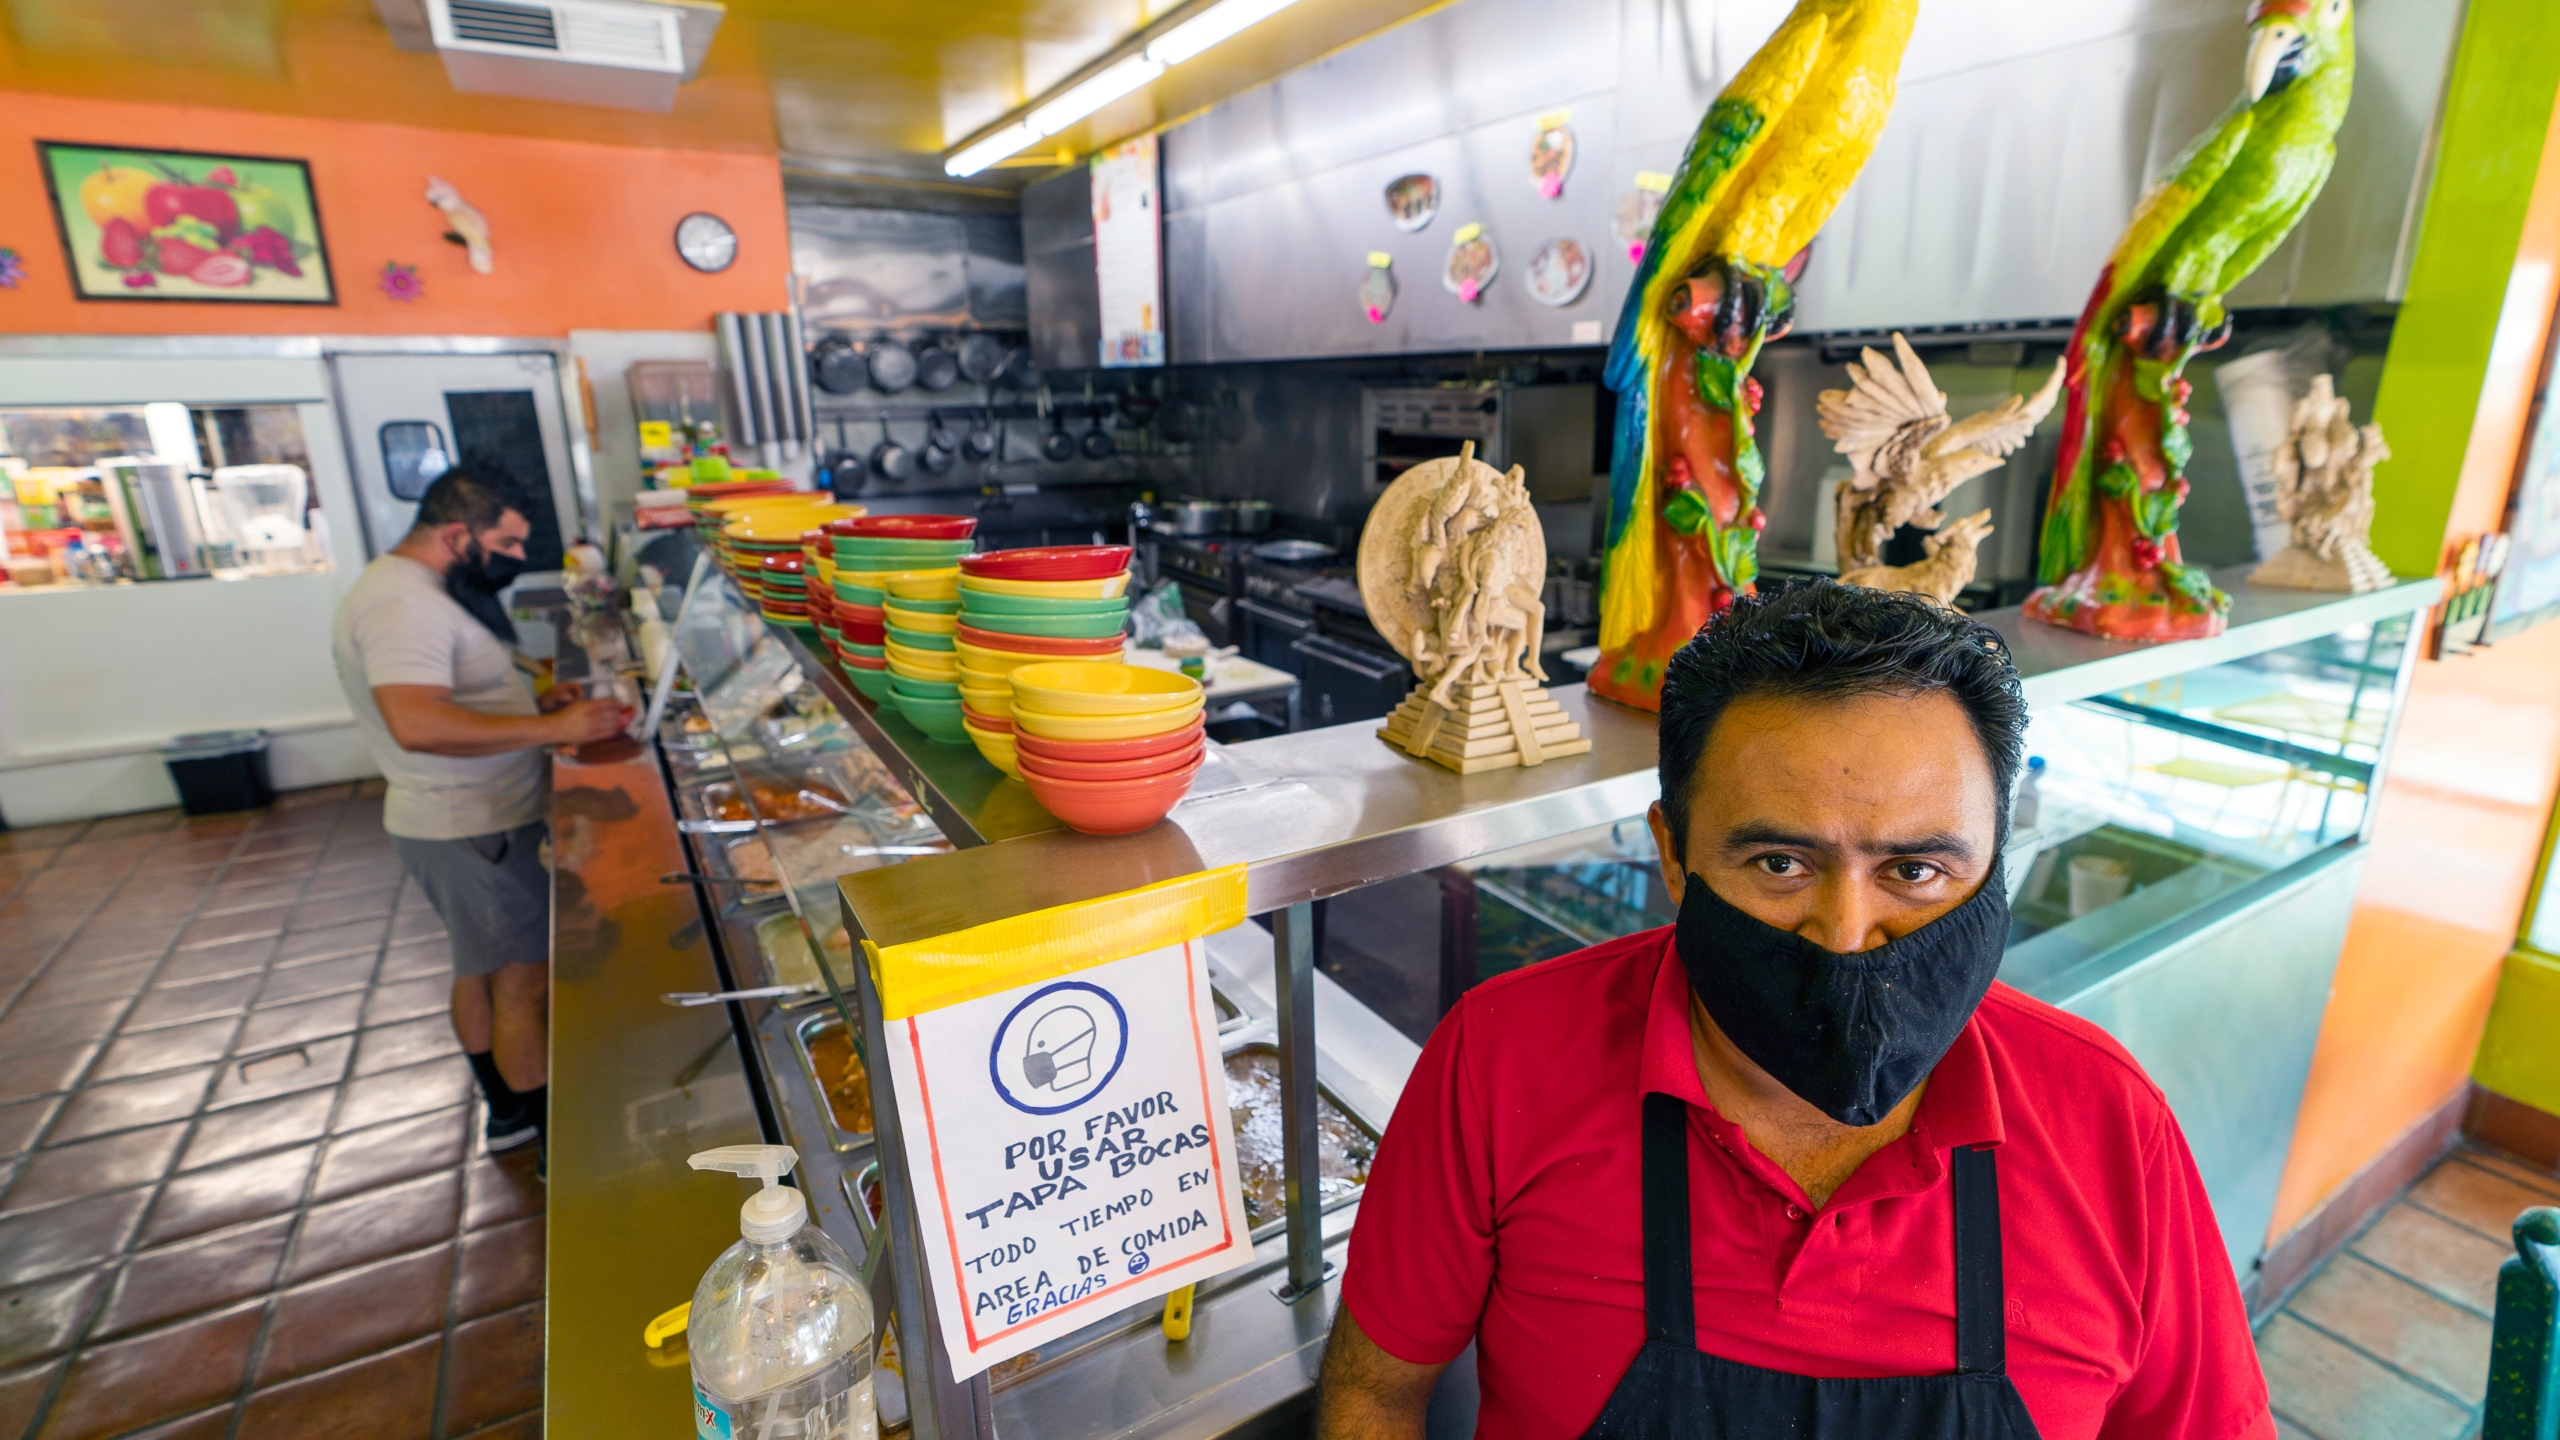 Adrian Luna, owner of the Taqueria El Sol buffet in Los Angeles' Boyle Heights neighborhood, stands in the buffet area of his restaurant in Los Angeles, Thursday, July 22, 2021. Luna requires all his customers to wear face masks. (AP Photo/Damian Dovarganes)